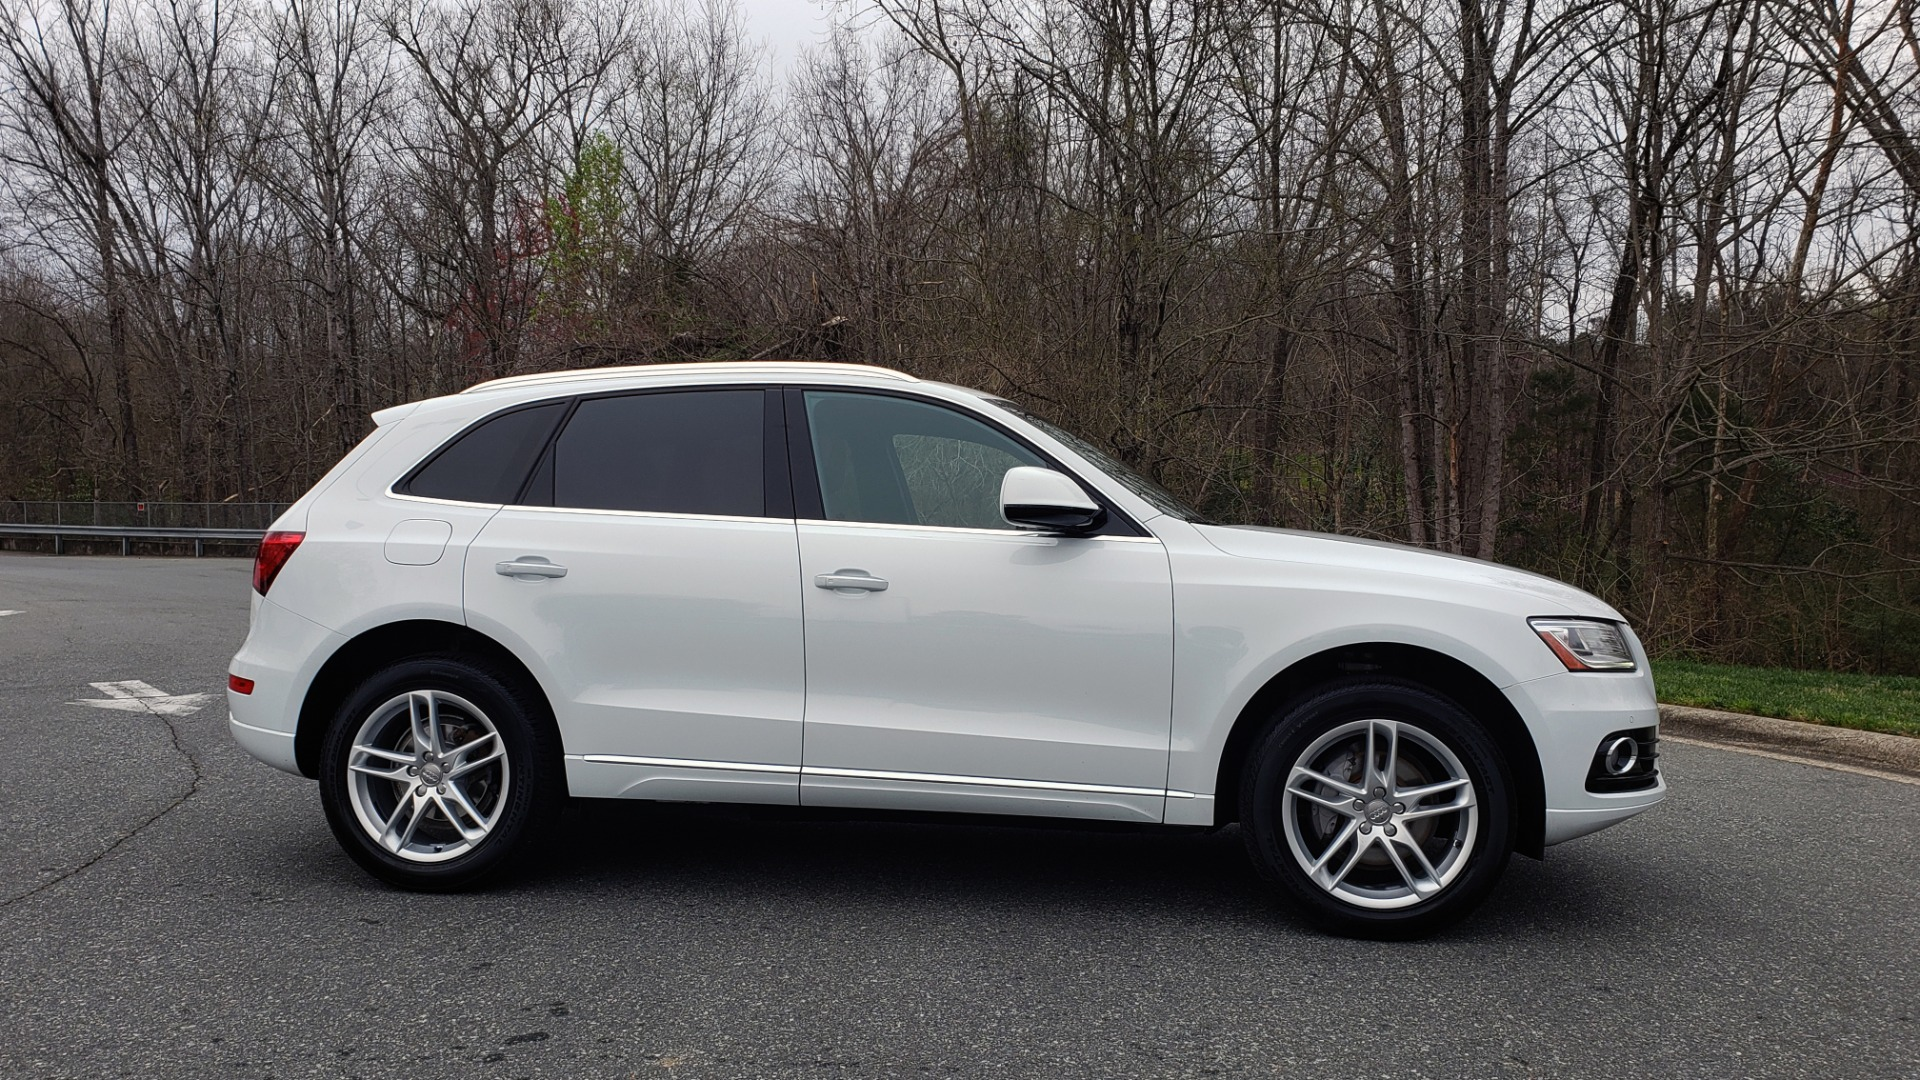 Used 2017 Audi Q5 PREMIUM PLUS / TECH / NAV / PANO-ROOF / B&O SND / REARVIEW for sale Sold at Formula Imports in Charlotte NC 28227 5